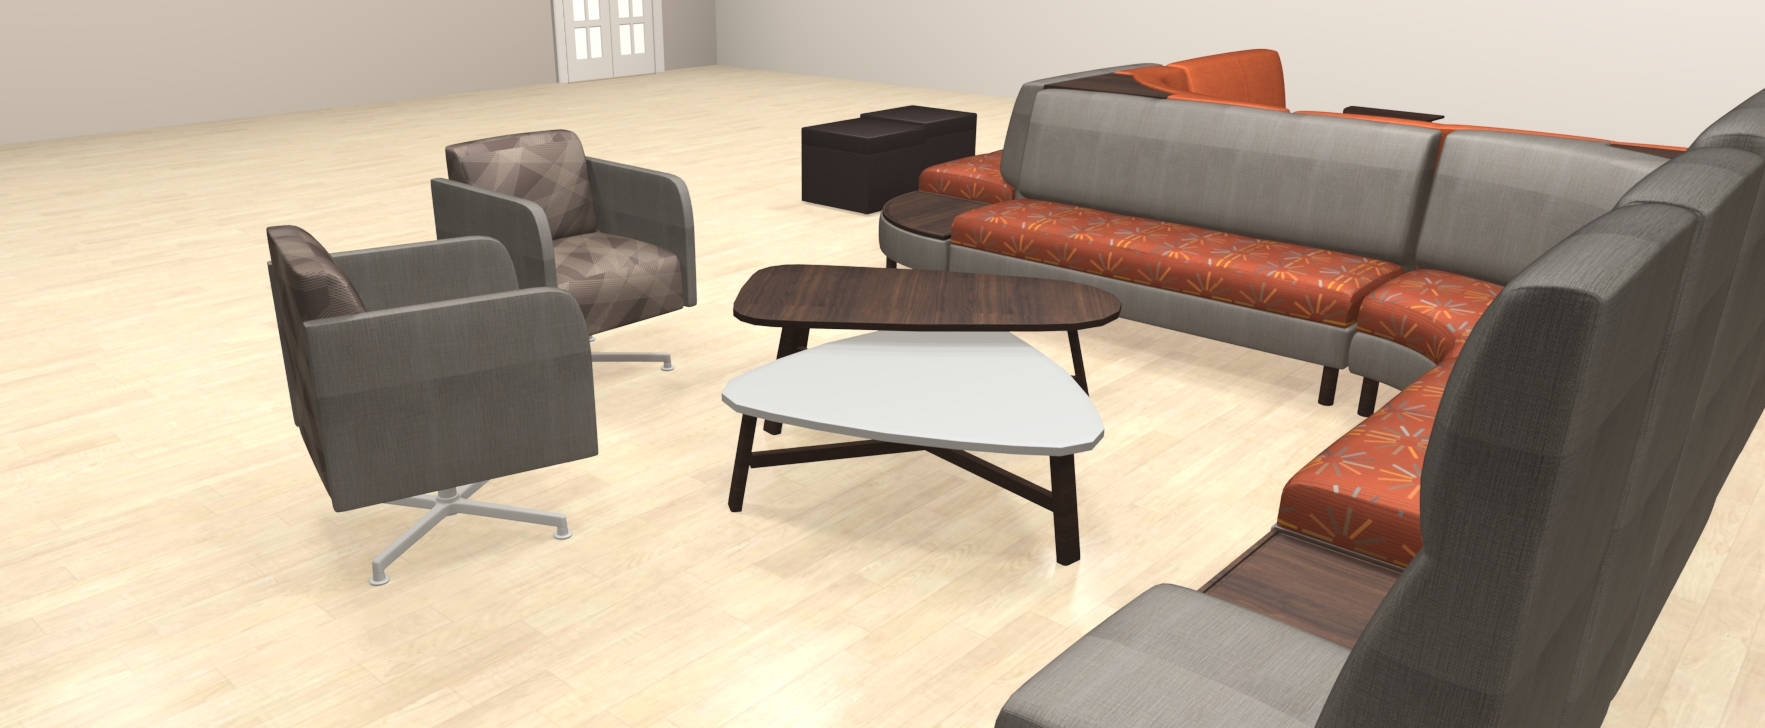 OFS Lounge Furniture 2